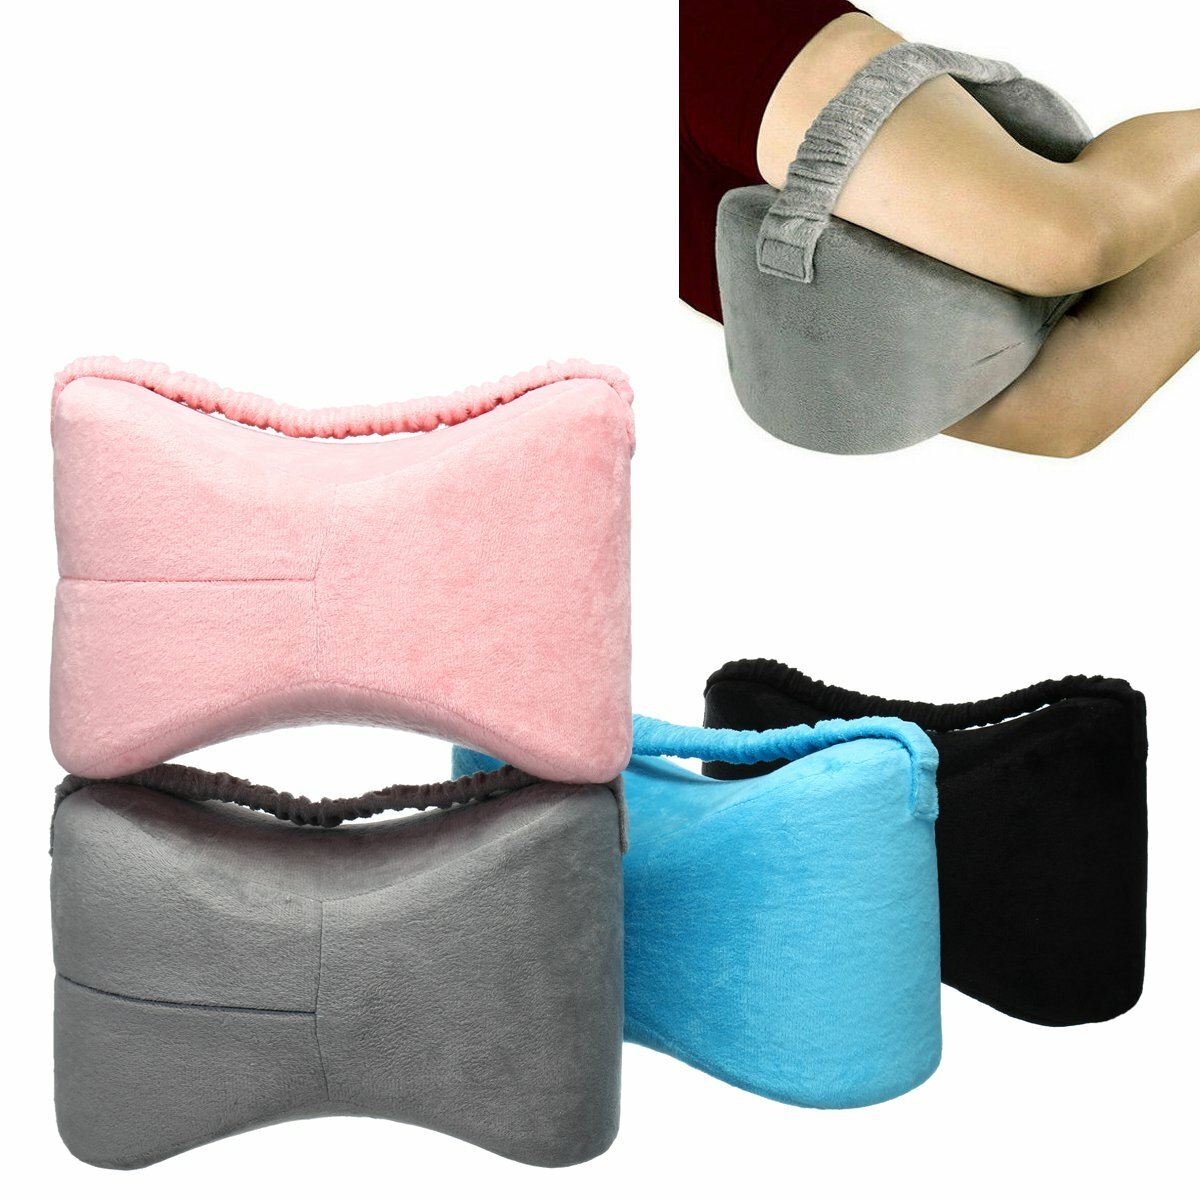 Memory Foam Leg Pillow Fatigue Relief Back Hips Knee Support Cushion Pillow, Banggood  - buy with discount